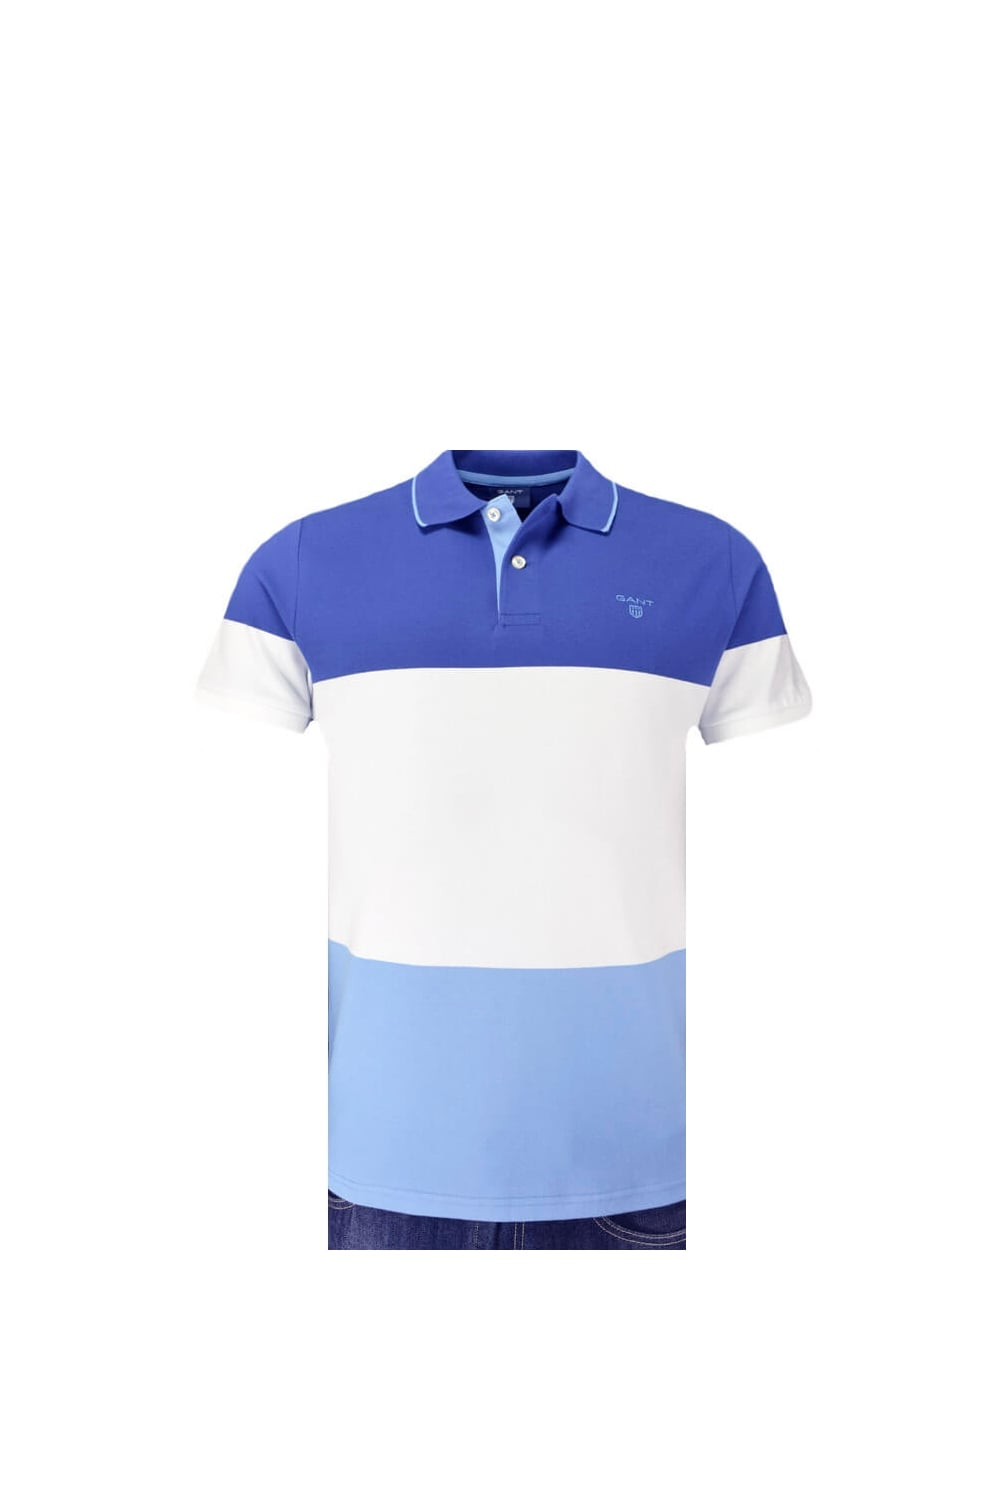 77a3f095489 Gant 3 Colour Stripe Pique Polo Shirt Blue/White/Sky Blue - Clothing ...